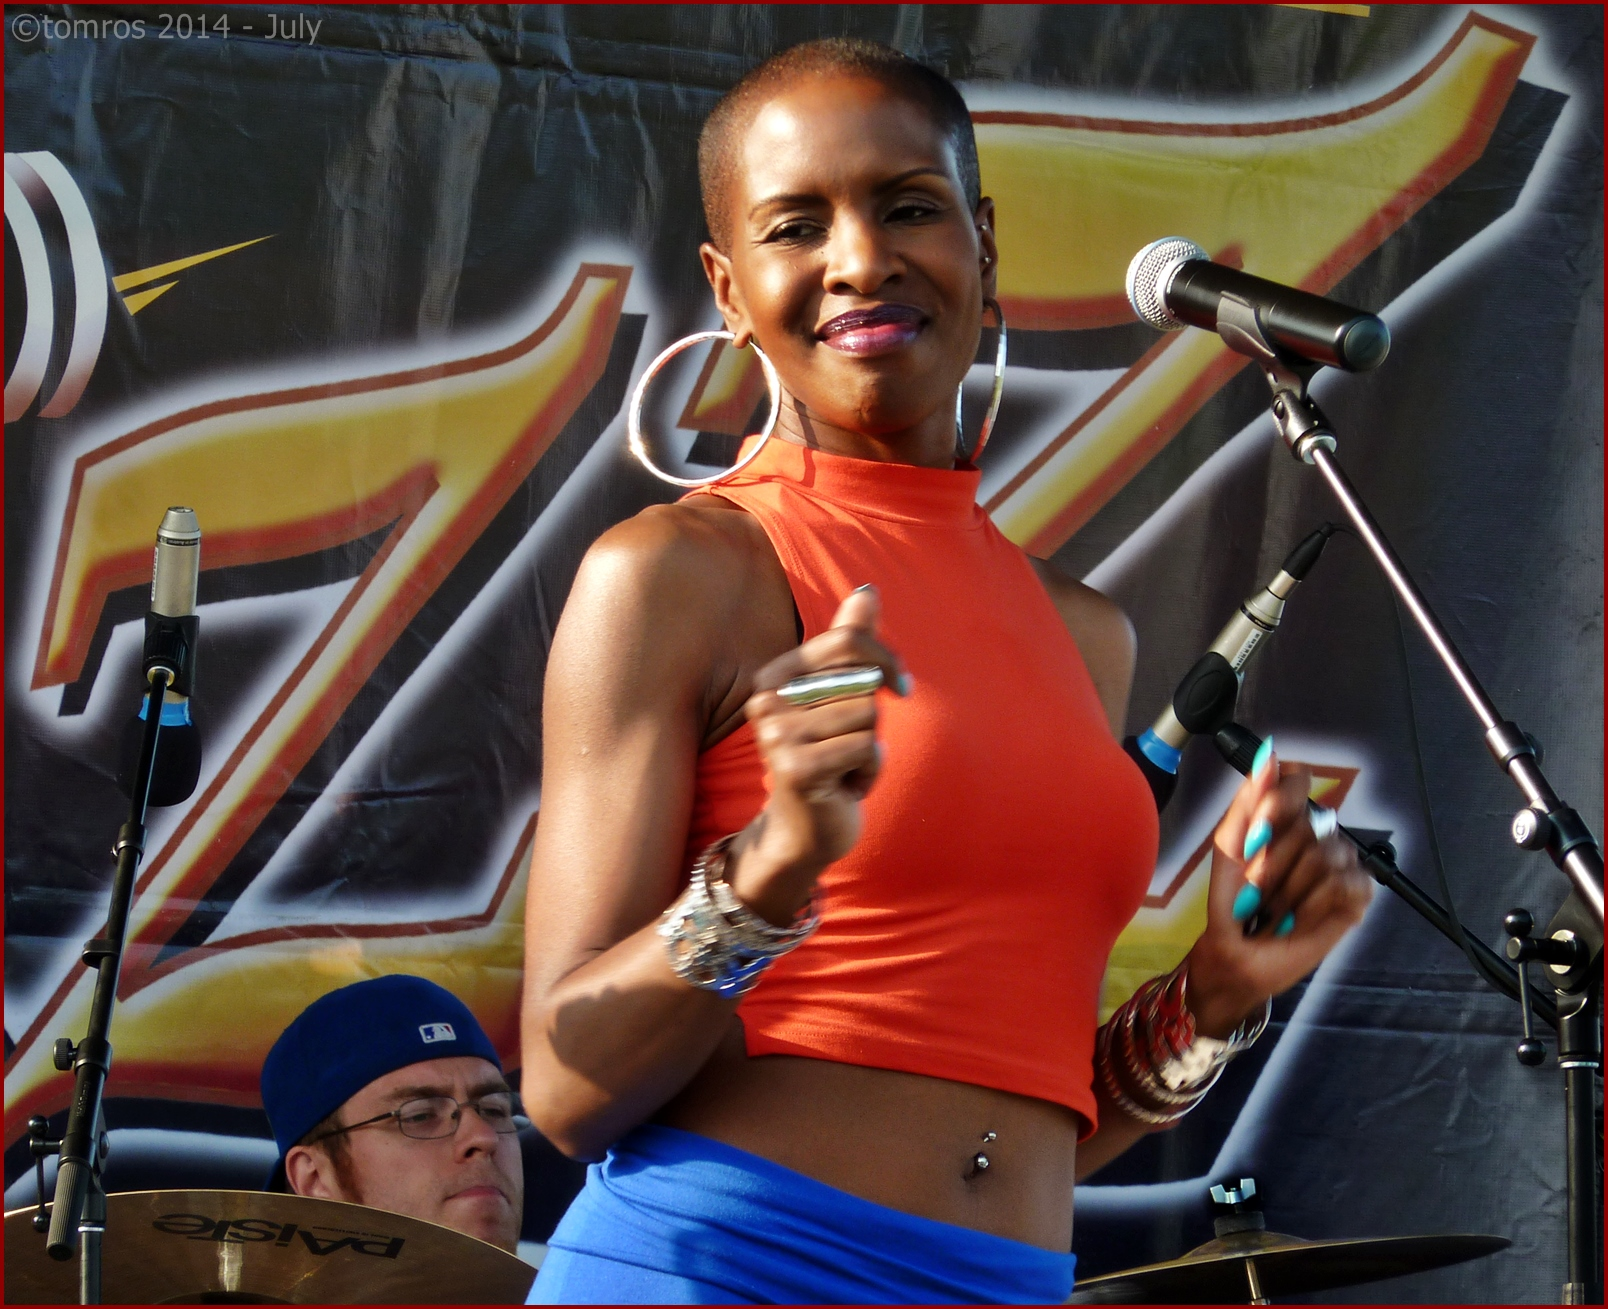 Kolette Easy at Beaches Jazz Festival on Island Stage - Woodbine Park 18. July, 2014